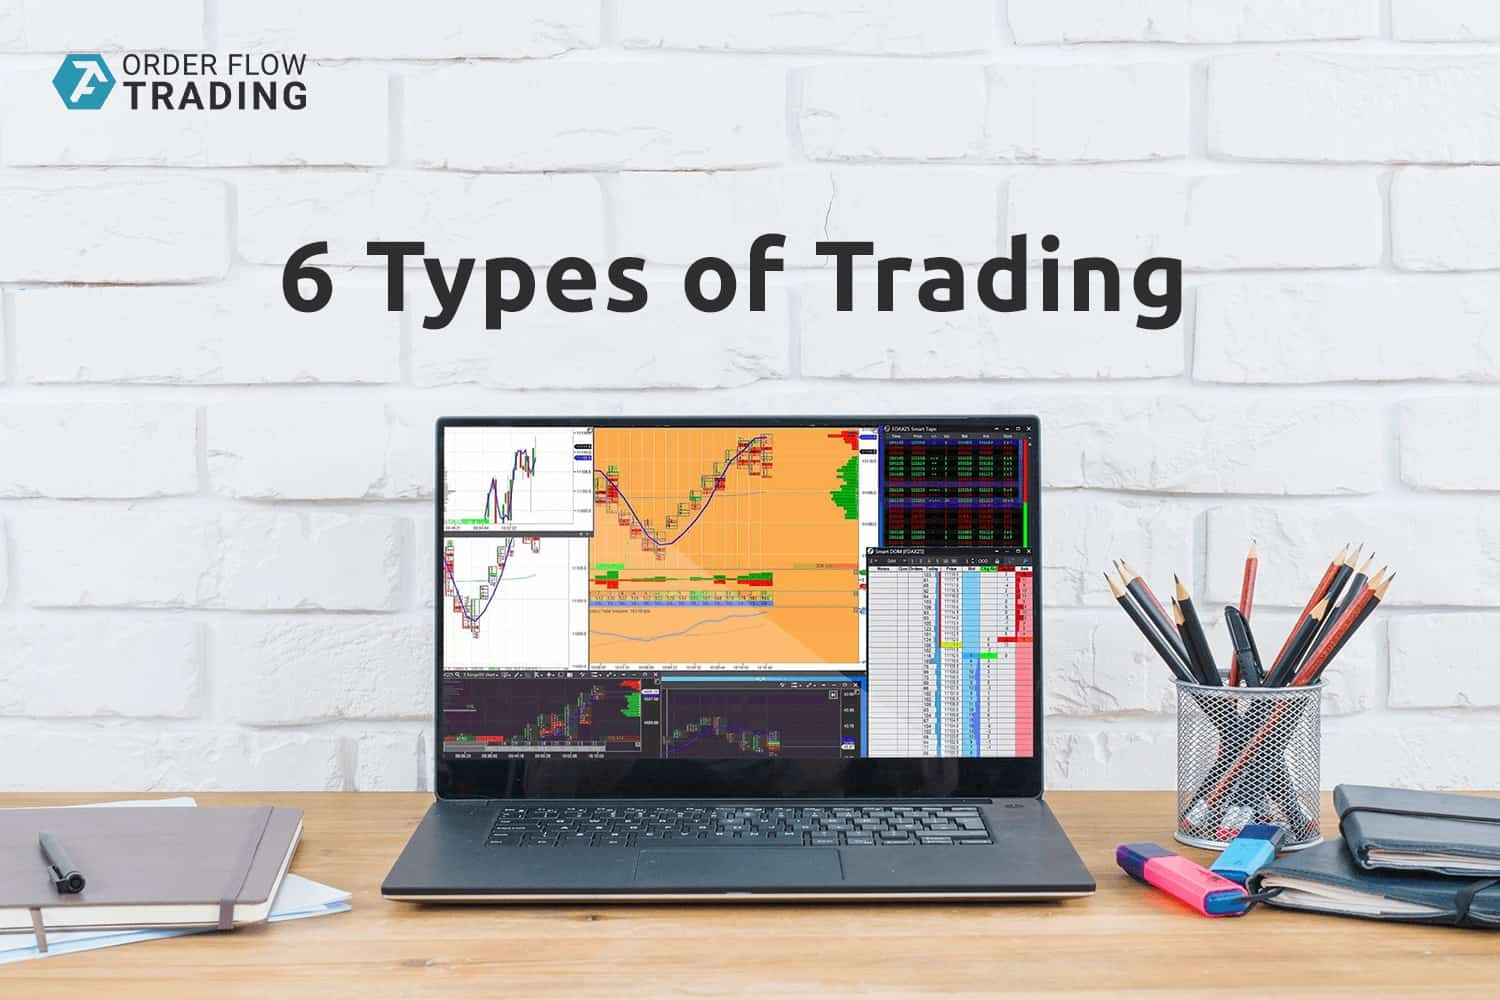 6 types of trading. Advantages and disadvantages.